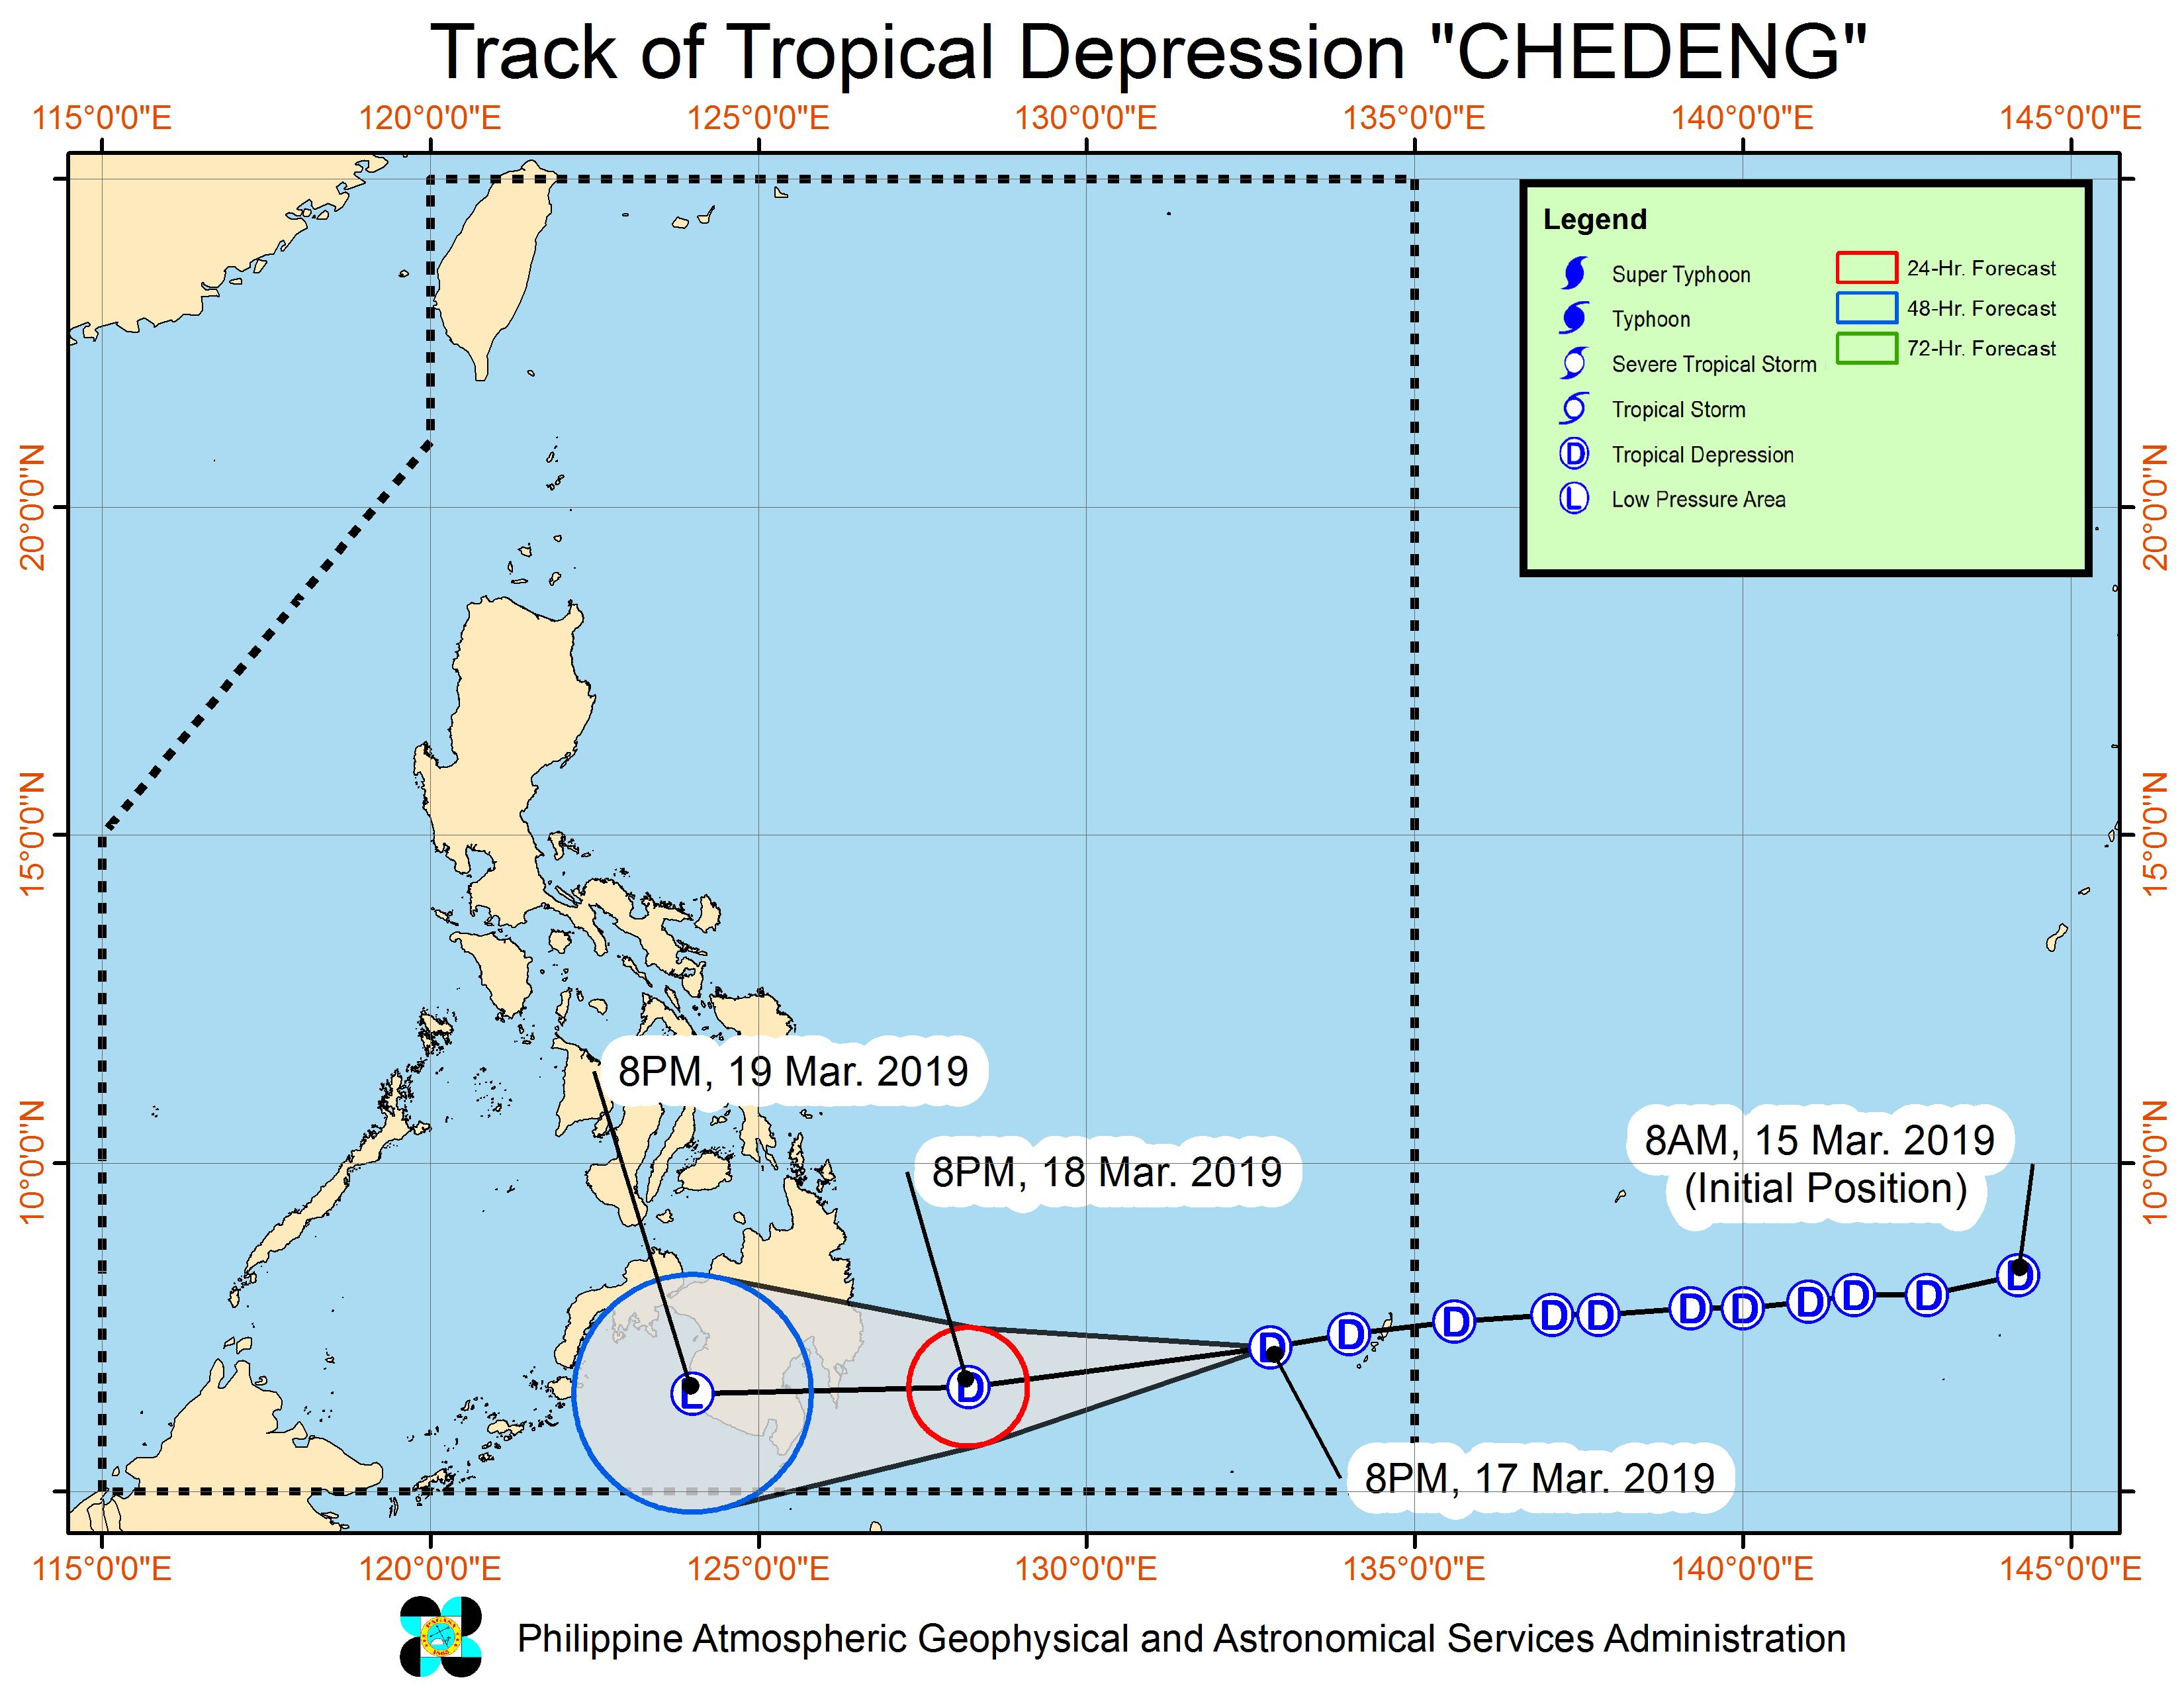 Forecast track of Tropical Depression Chedeng as of March 17, 2019, 11 pm. Image from PAGASA